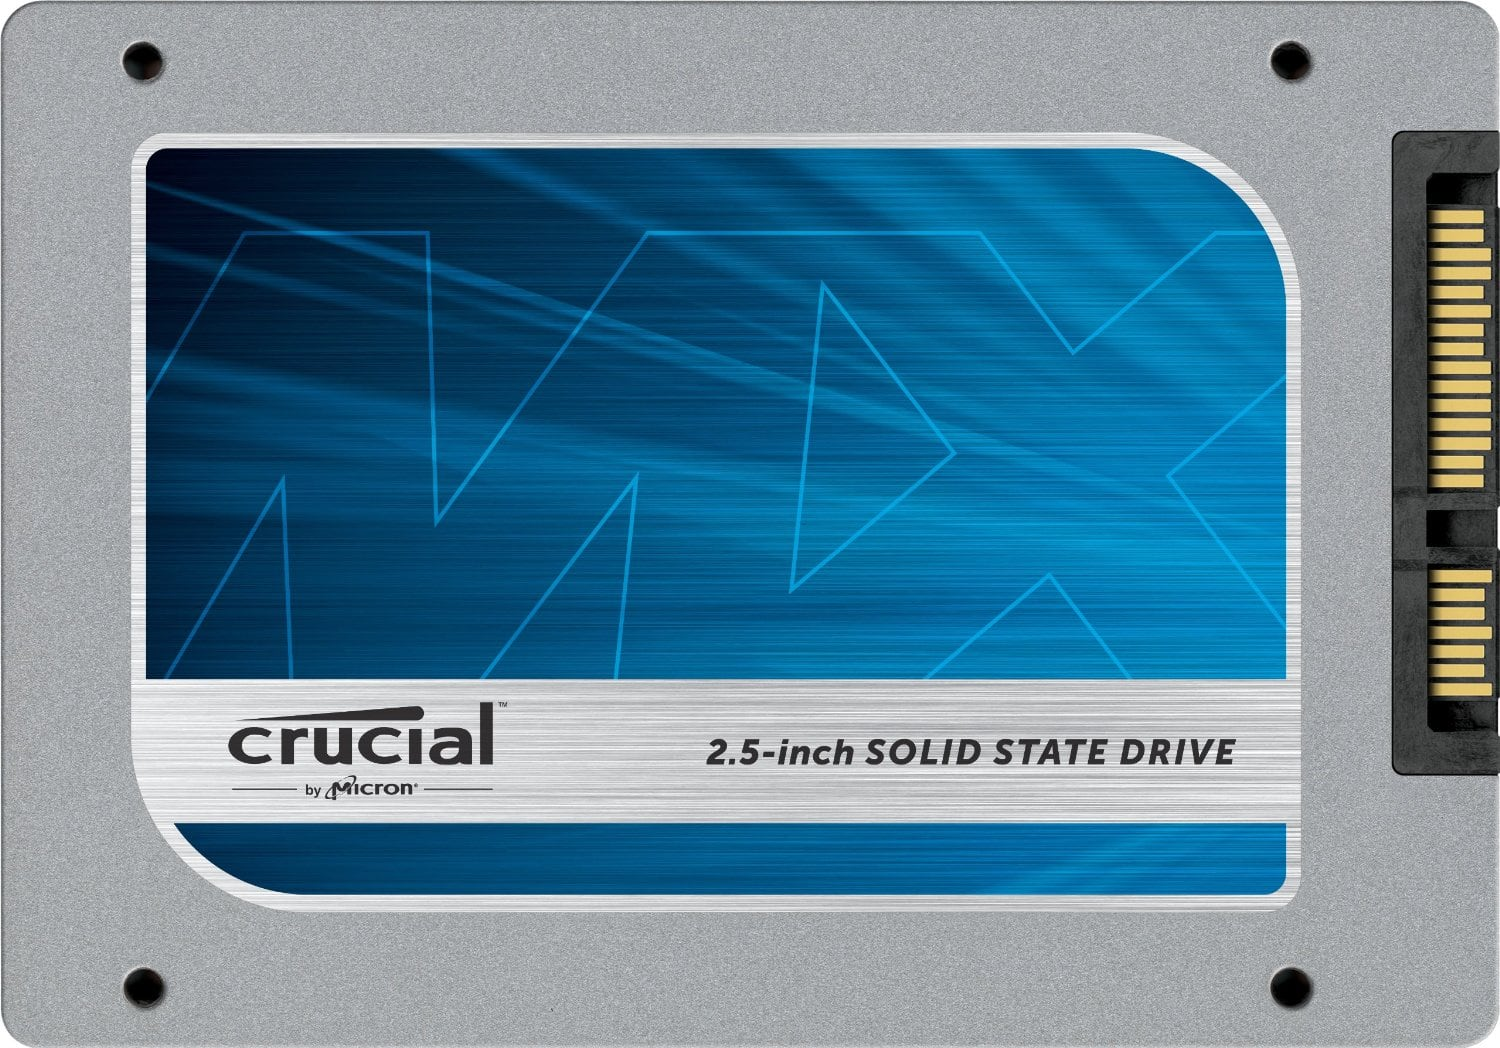 512GB Crucial MX100 Solid State Drive (SSD)  $170 w/ Visa Checkout + Free Shipping